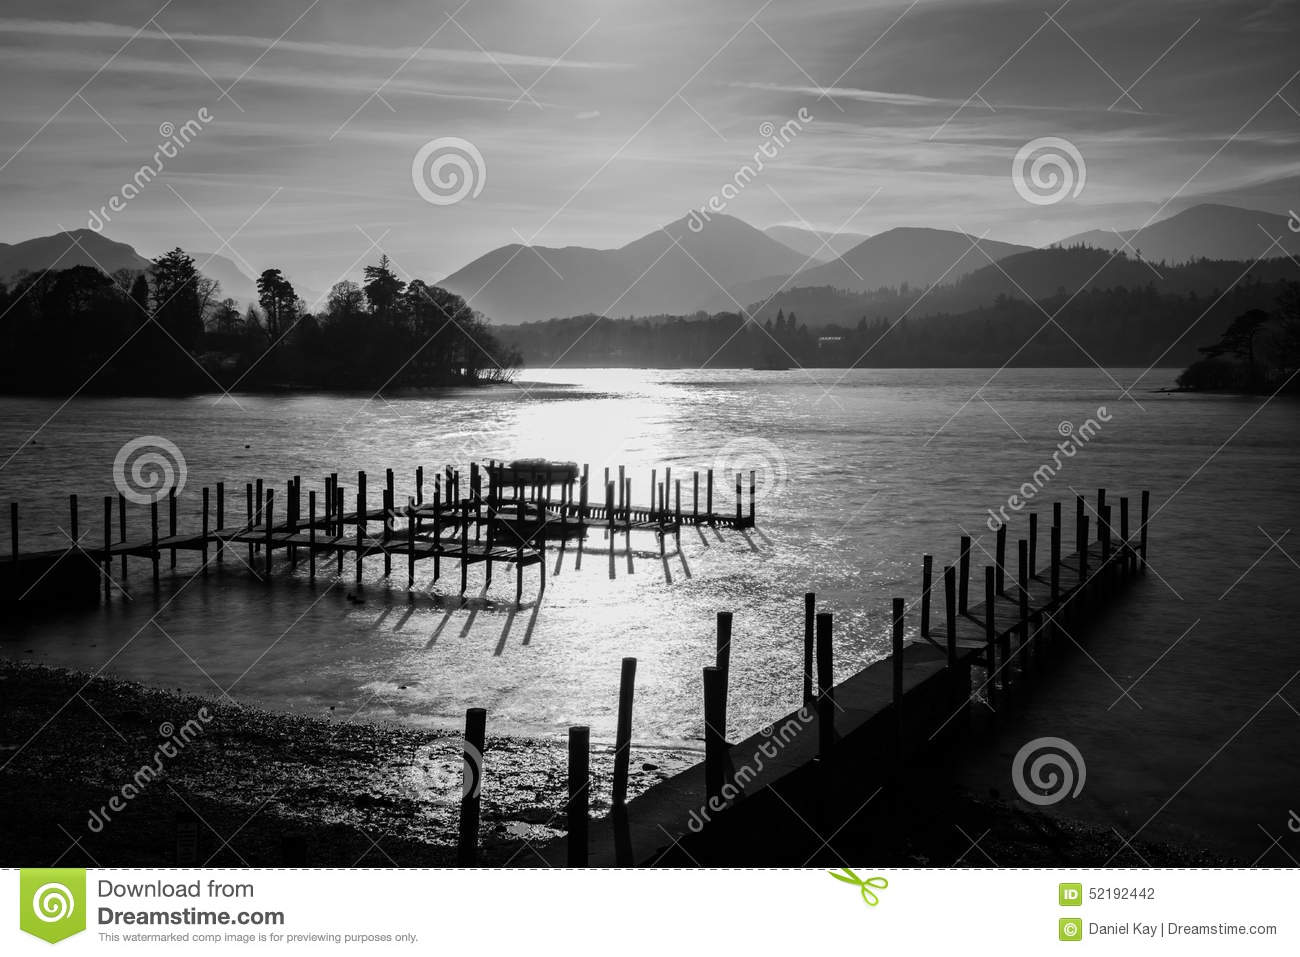 Dramatic black and white sunset at derwentwater lake in the lake district with haze over mountains